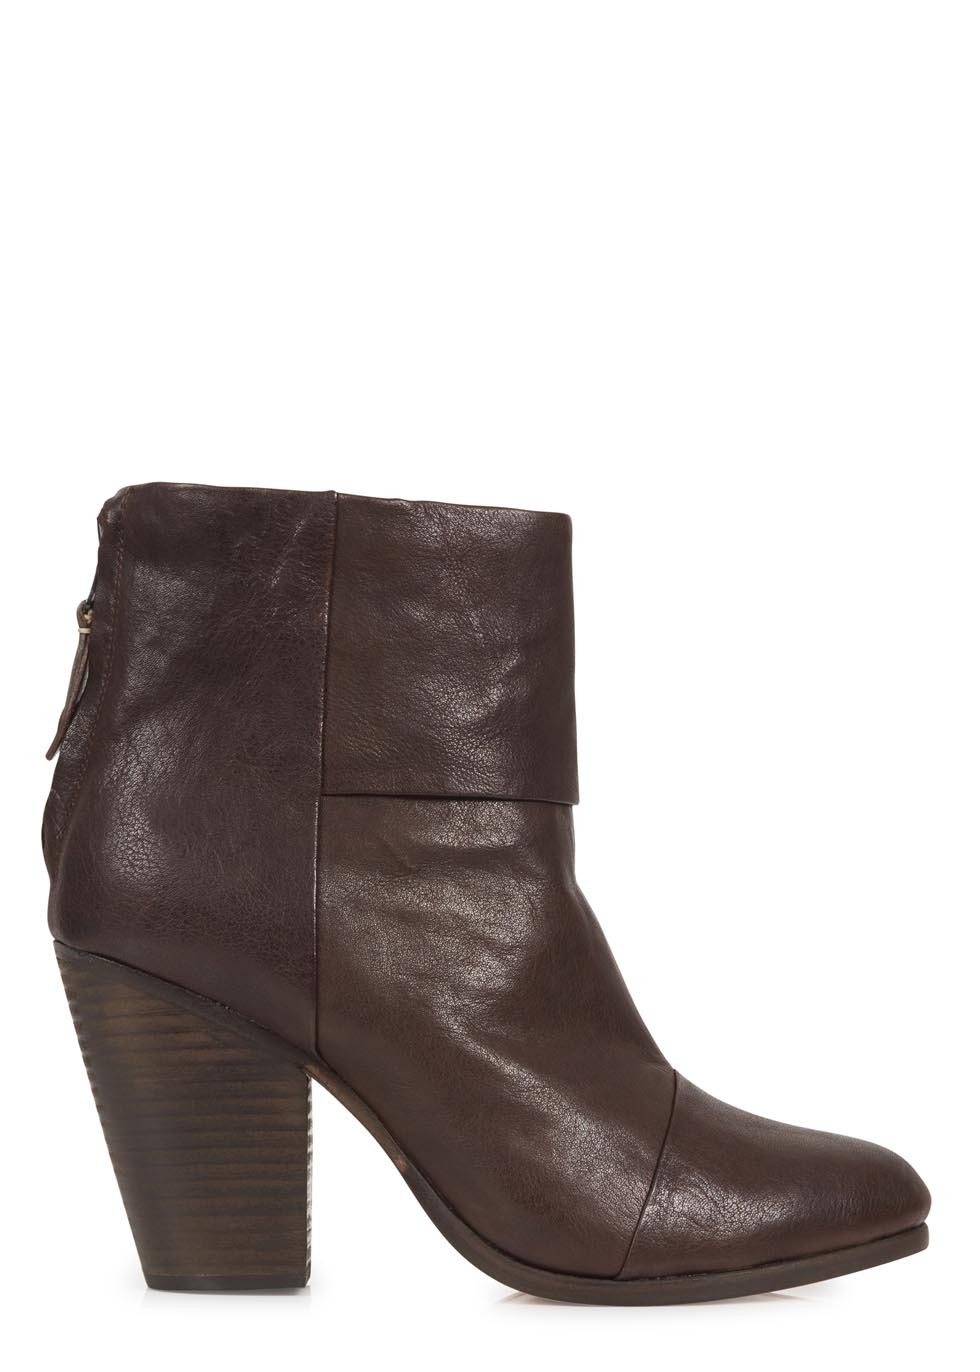 Classic Newbury dark brown leather ankle boots  - Women